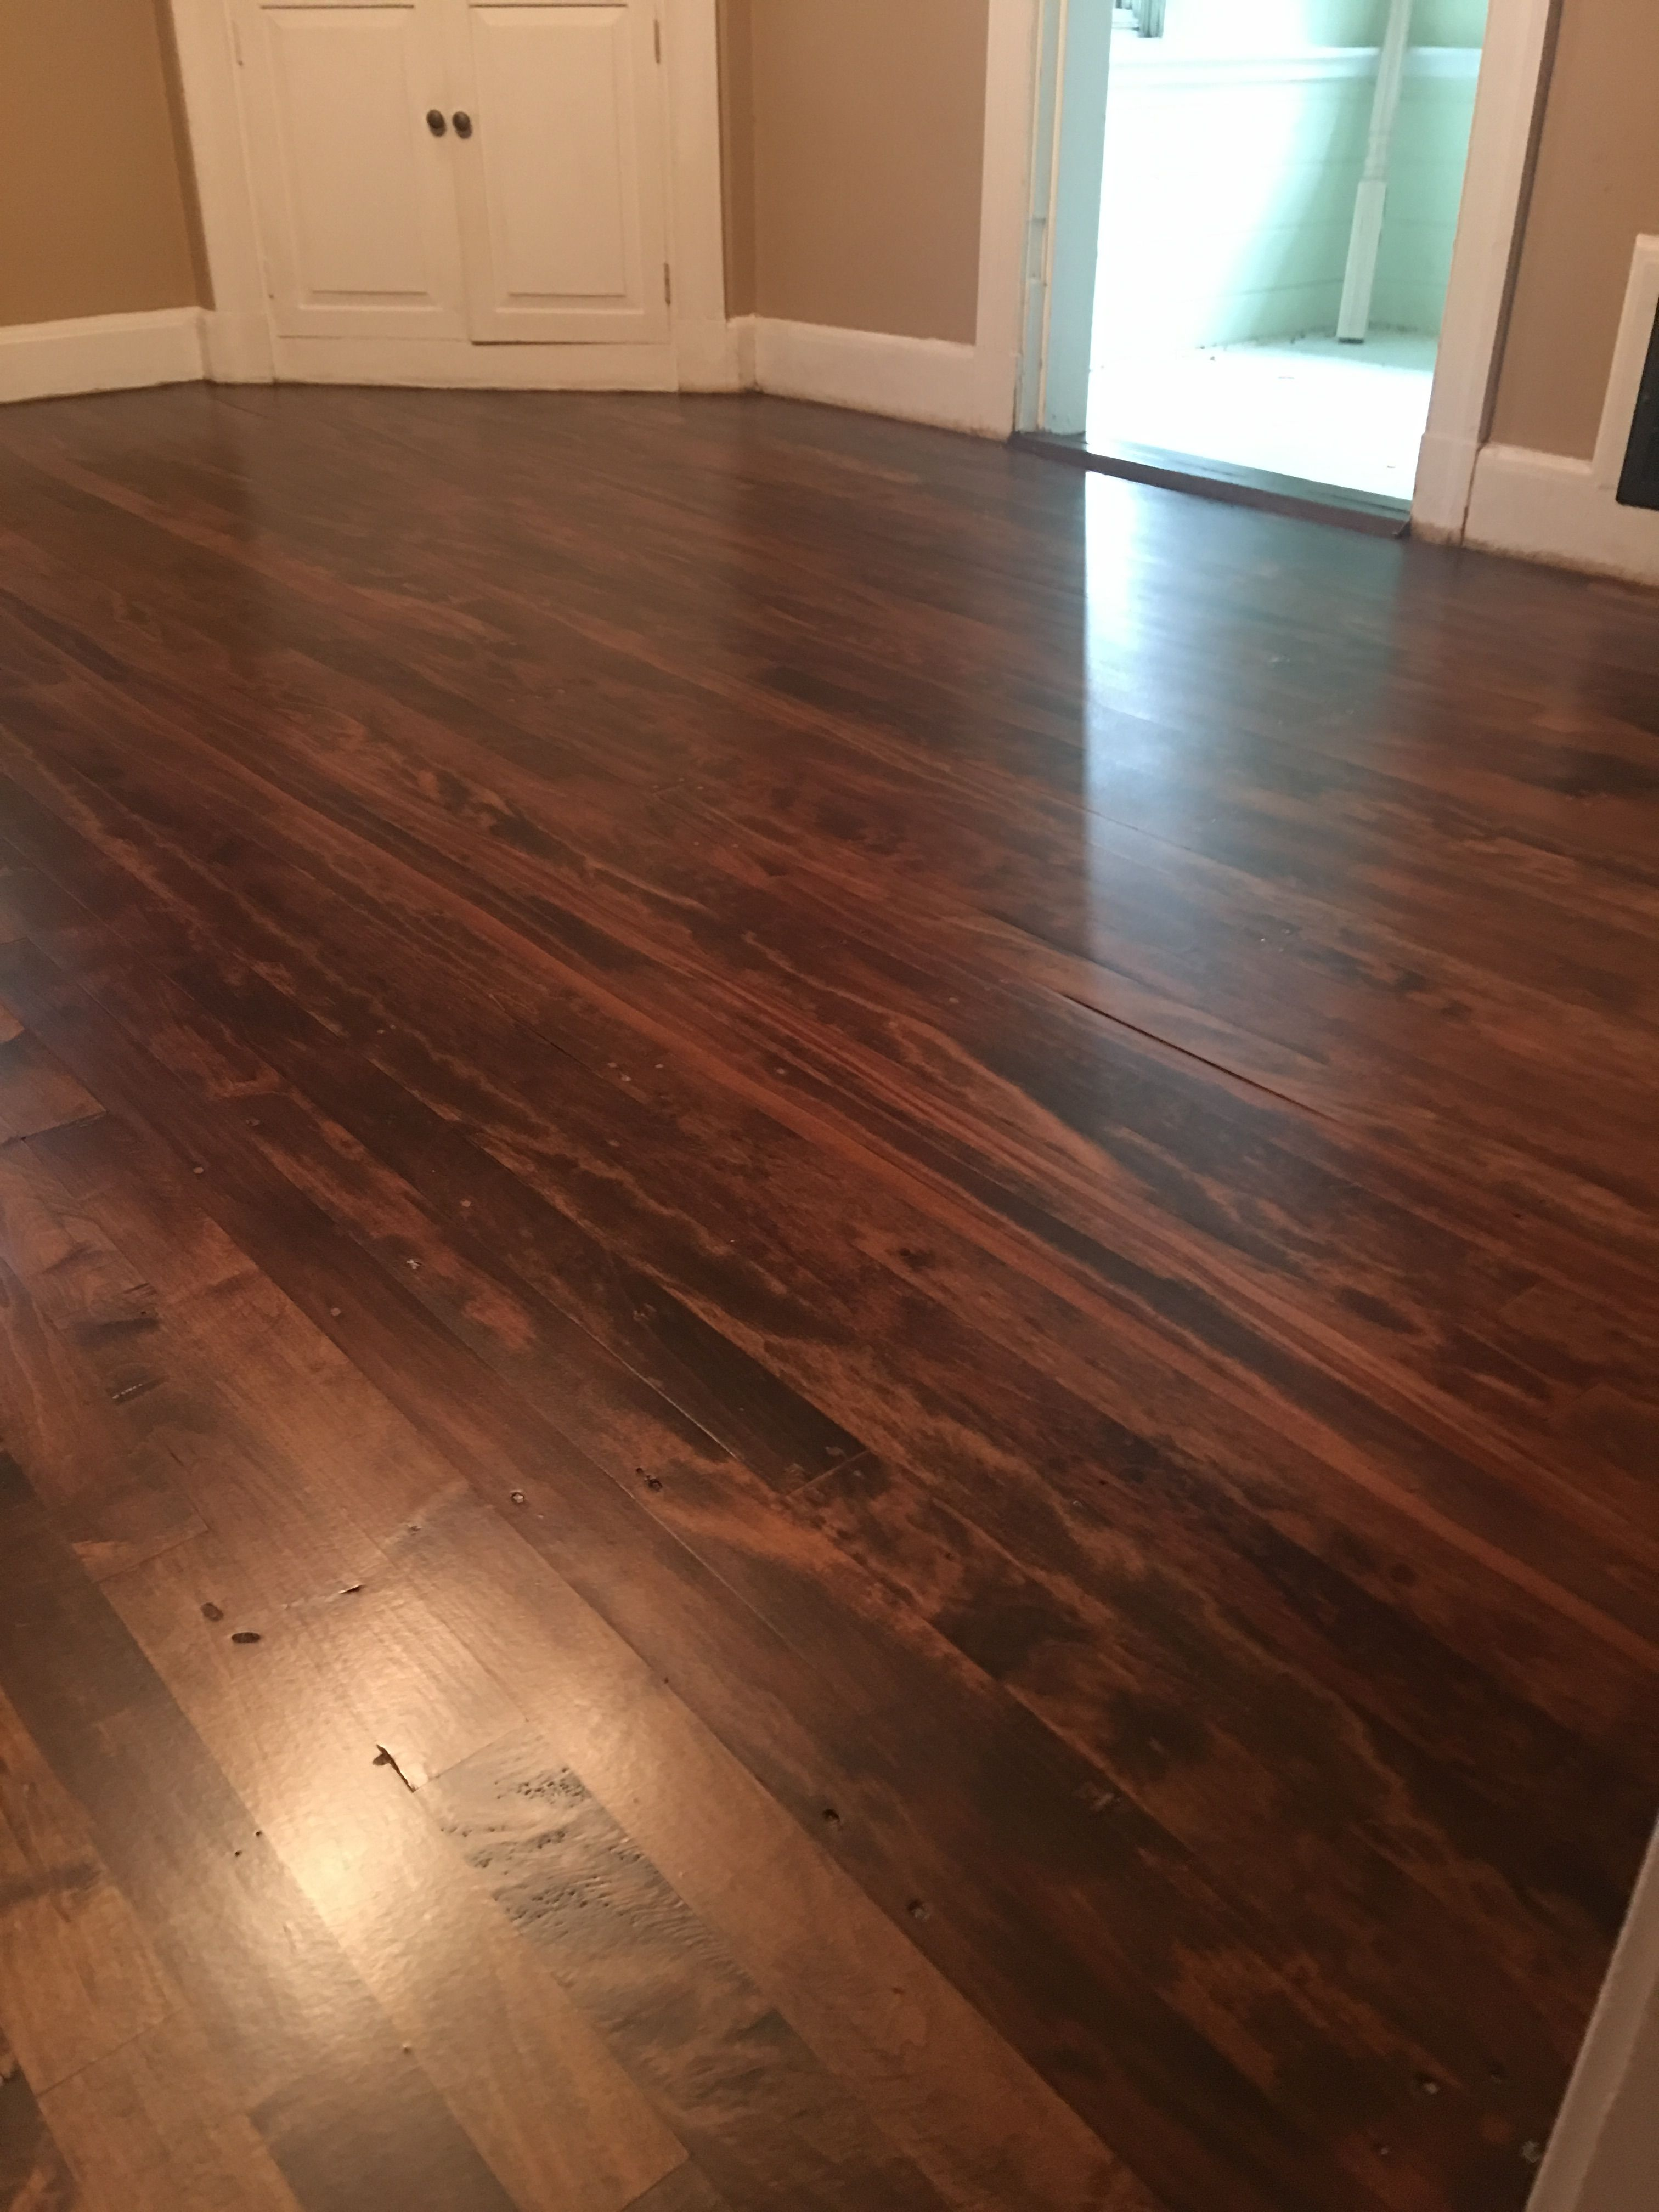 Duraseal Spice Brown And Provincial With Satin Poly Finish Wood Floor Design Hardwood Floors Floor Design